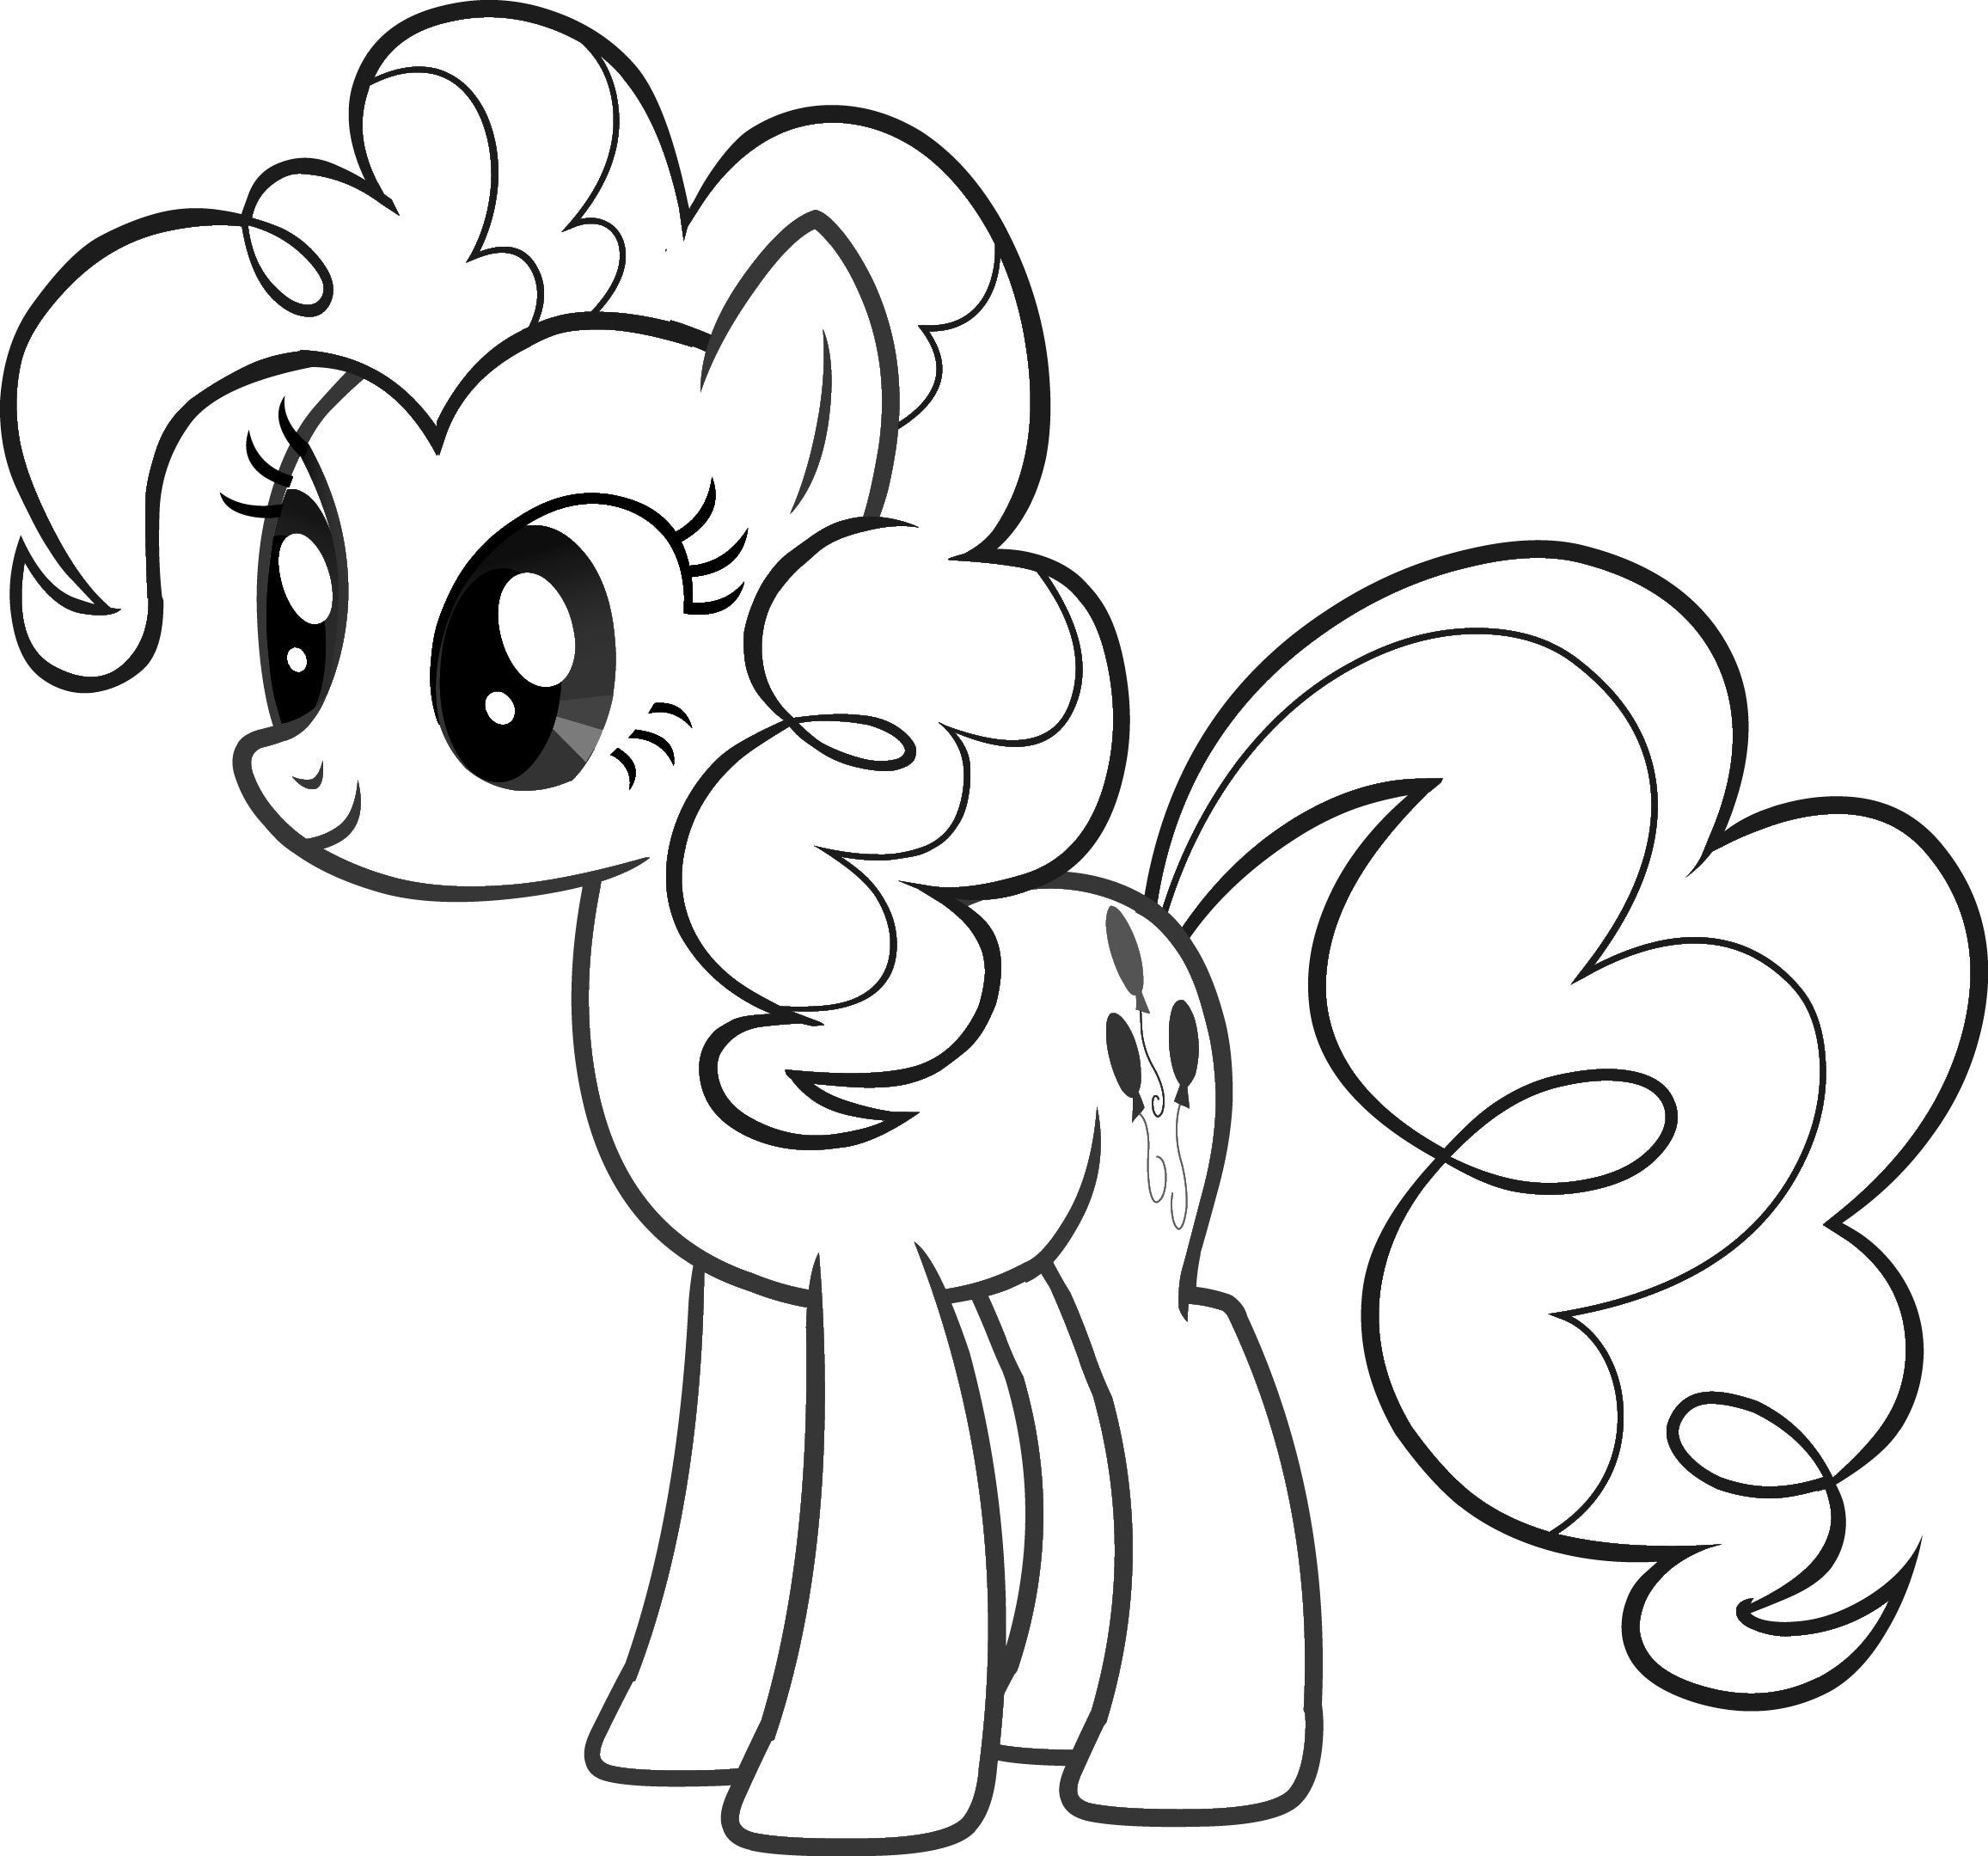 My Little Pony Coloring Pages | My Little Pony Coloring Pages ...